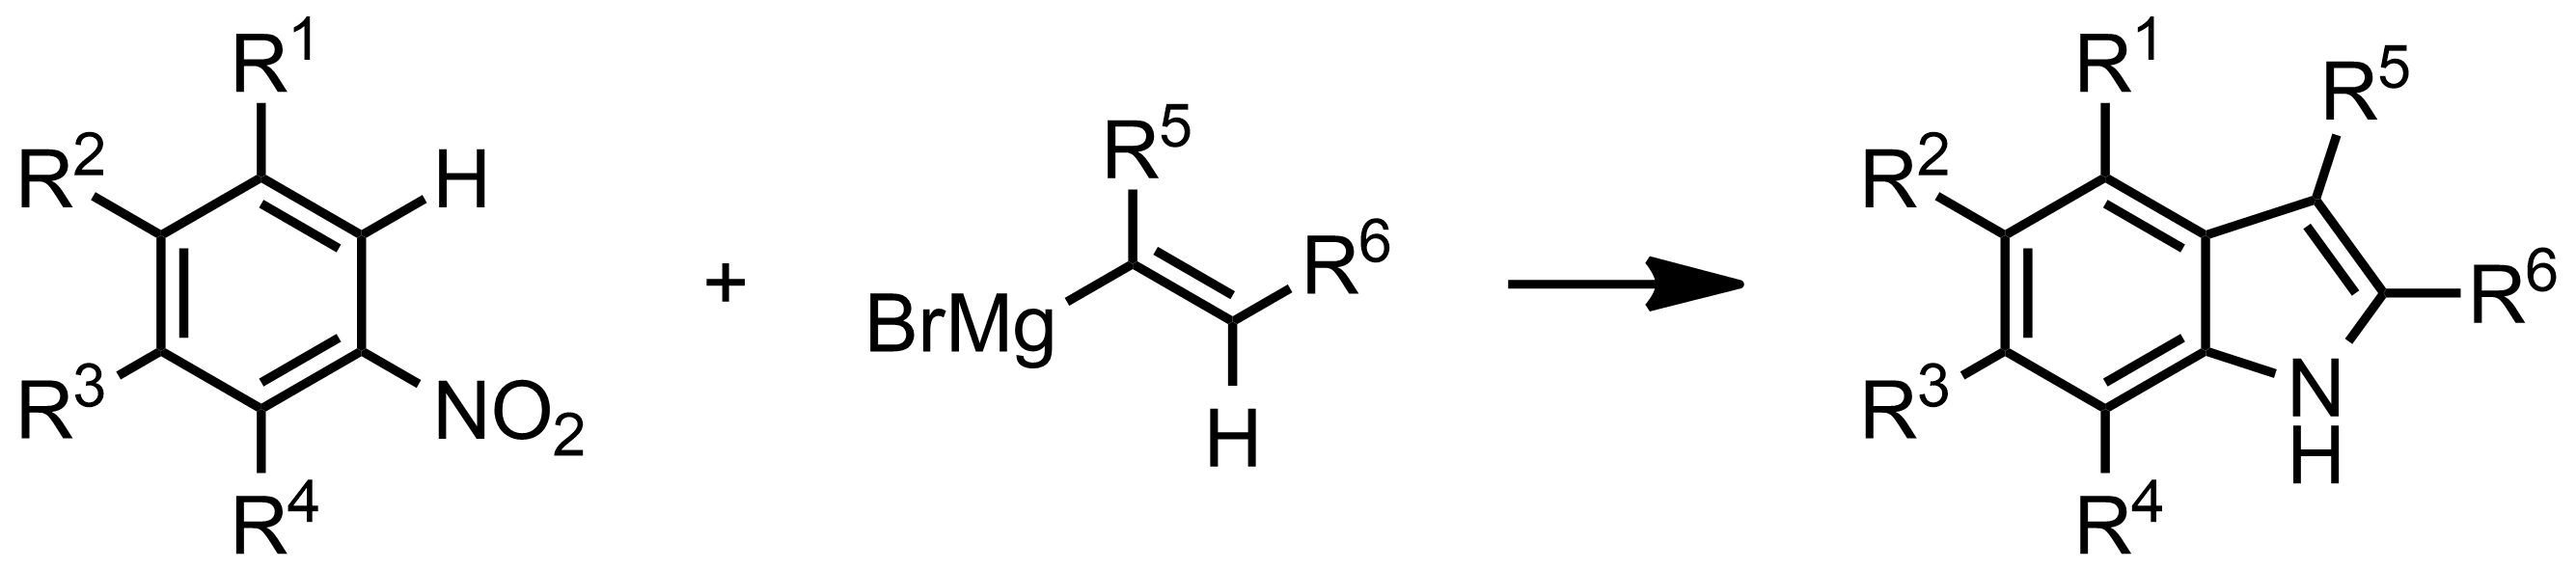 Schematic representation of the Bartoli Indole Synthesis.